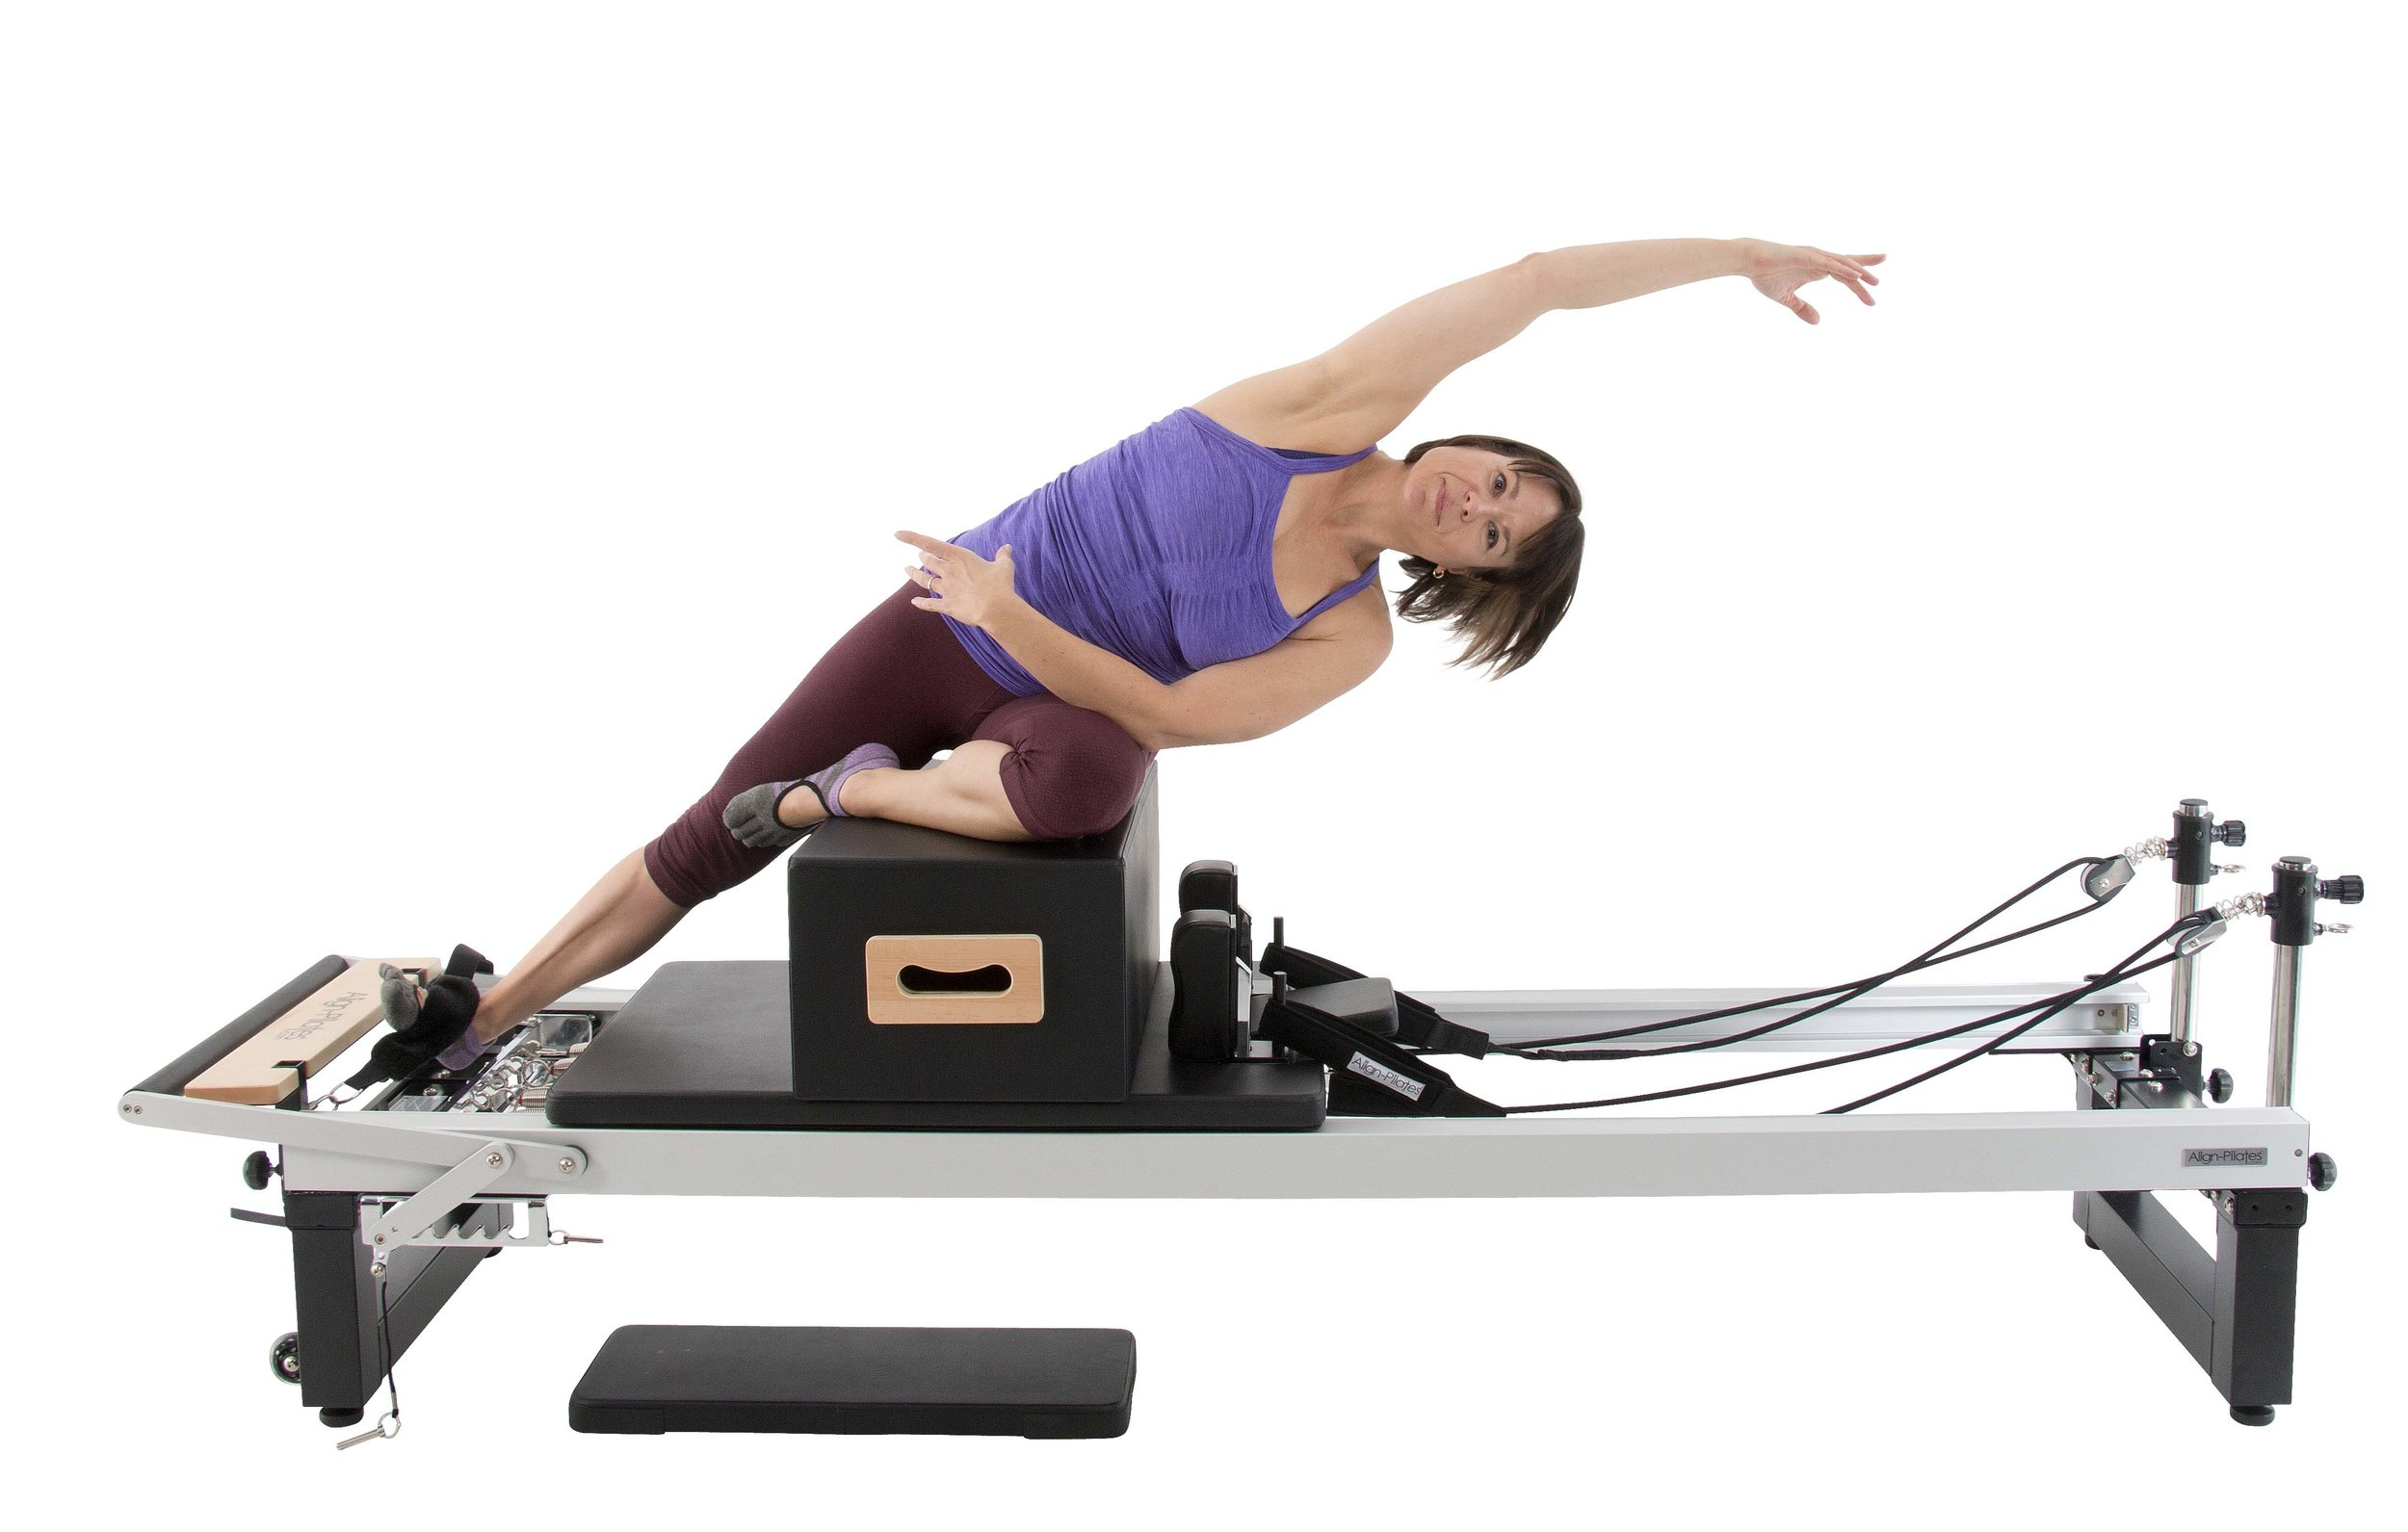 Align A2R2 studio pilates reformer with pro sitting box